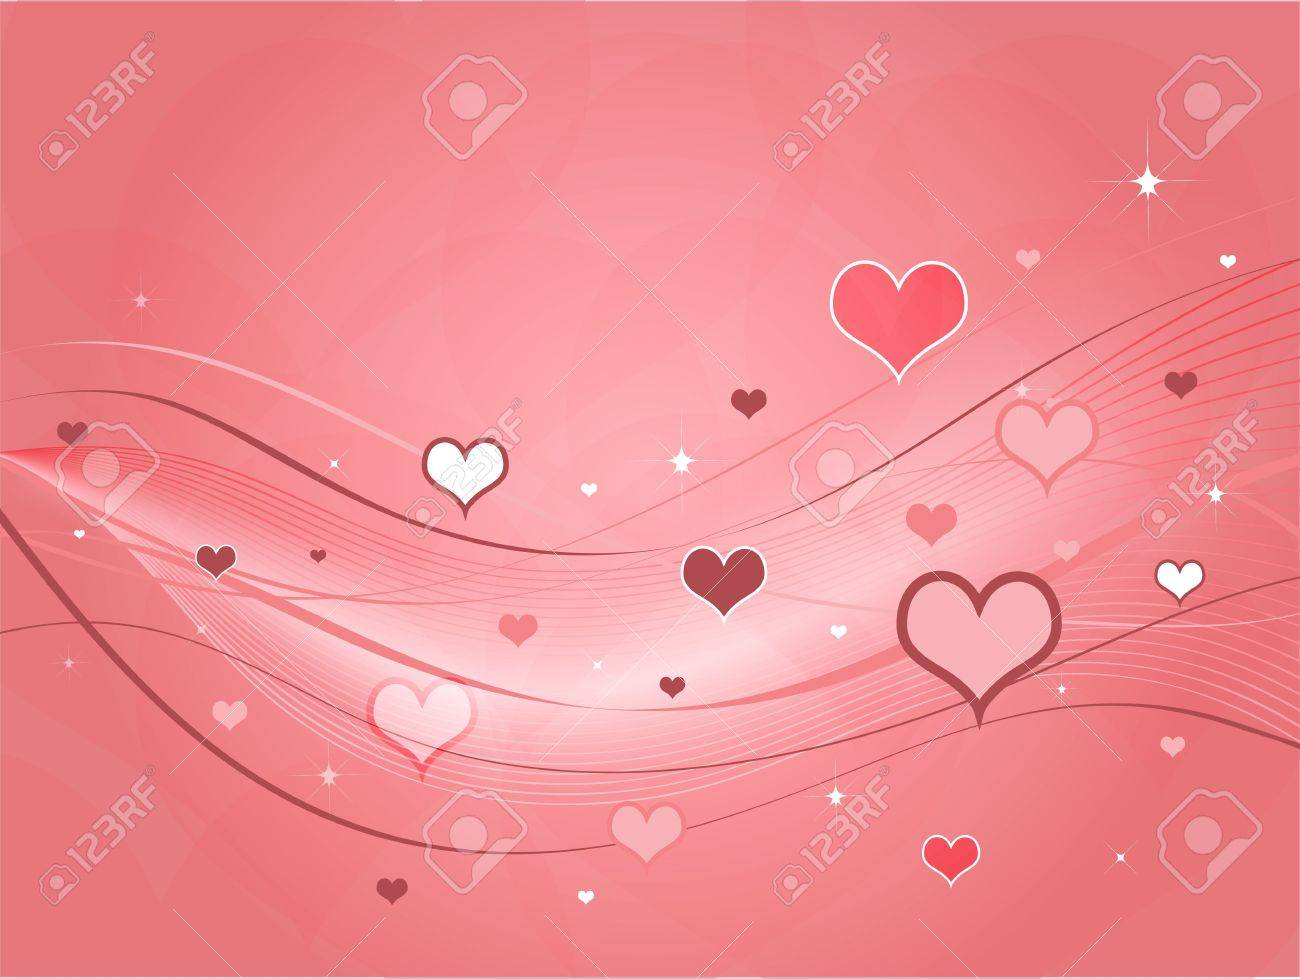 Different shapes and shades of pink hearts against a pink background with swoops and ribbons. Stock Photo - 2298629